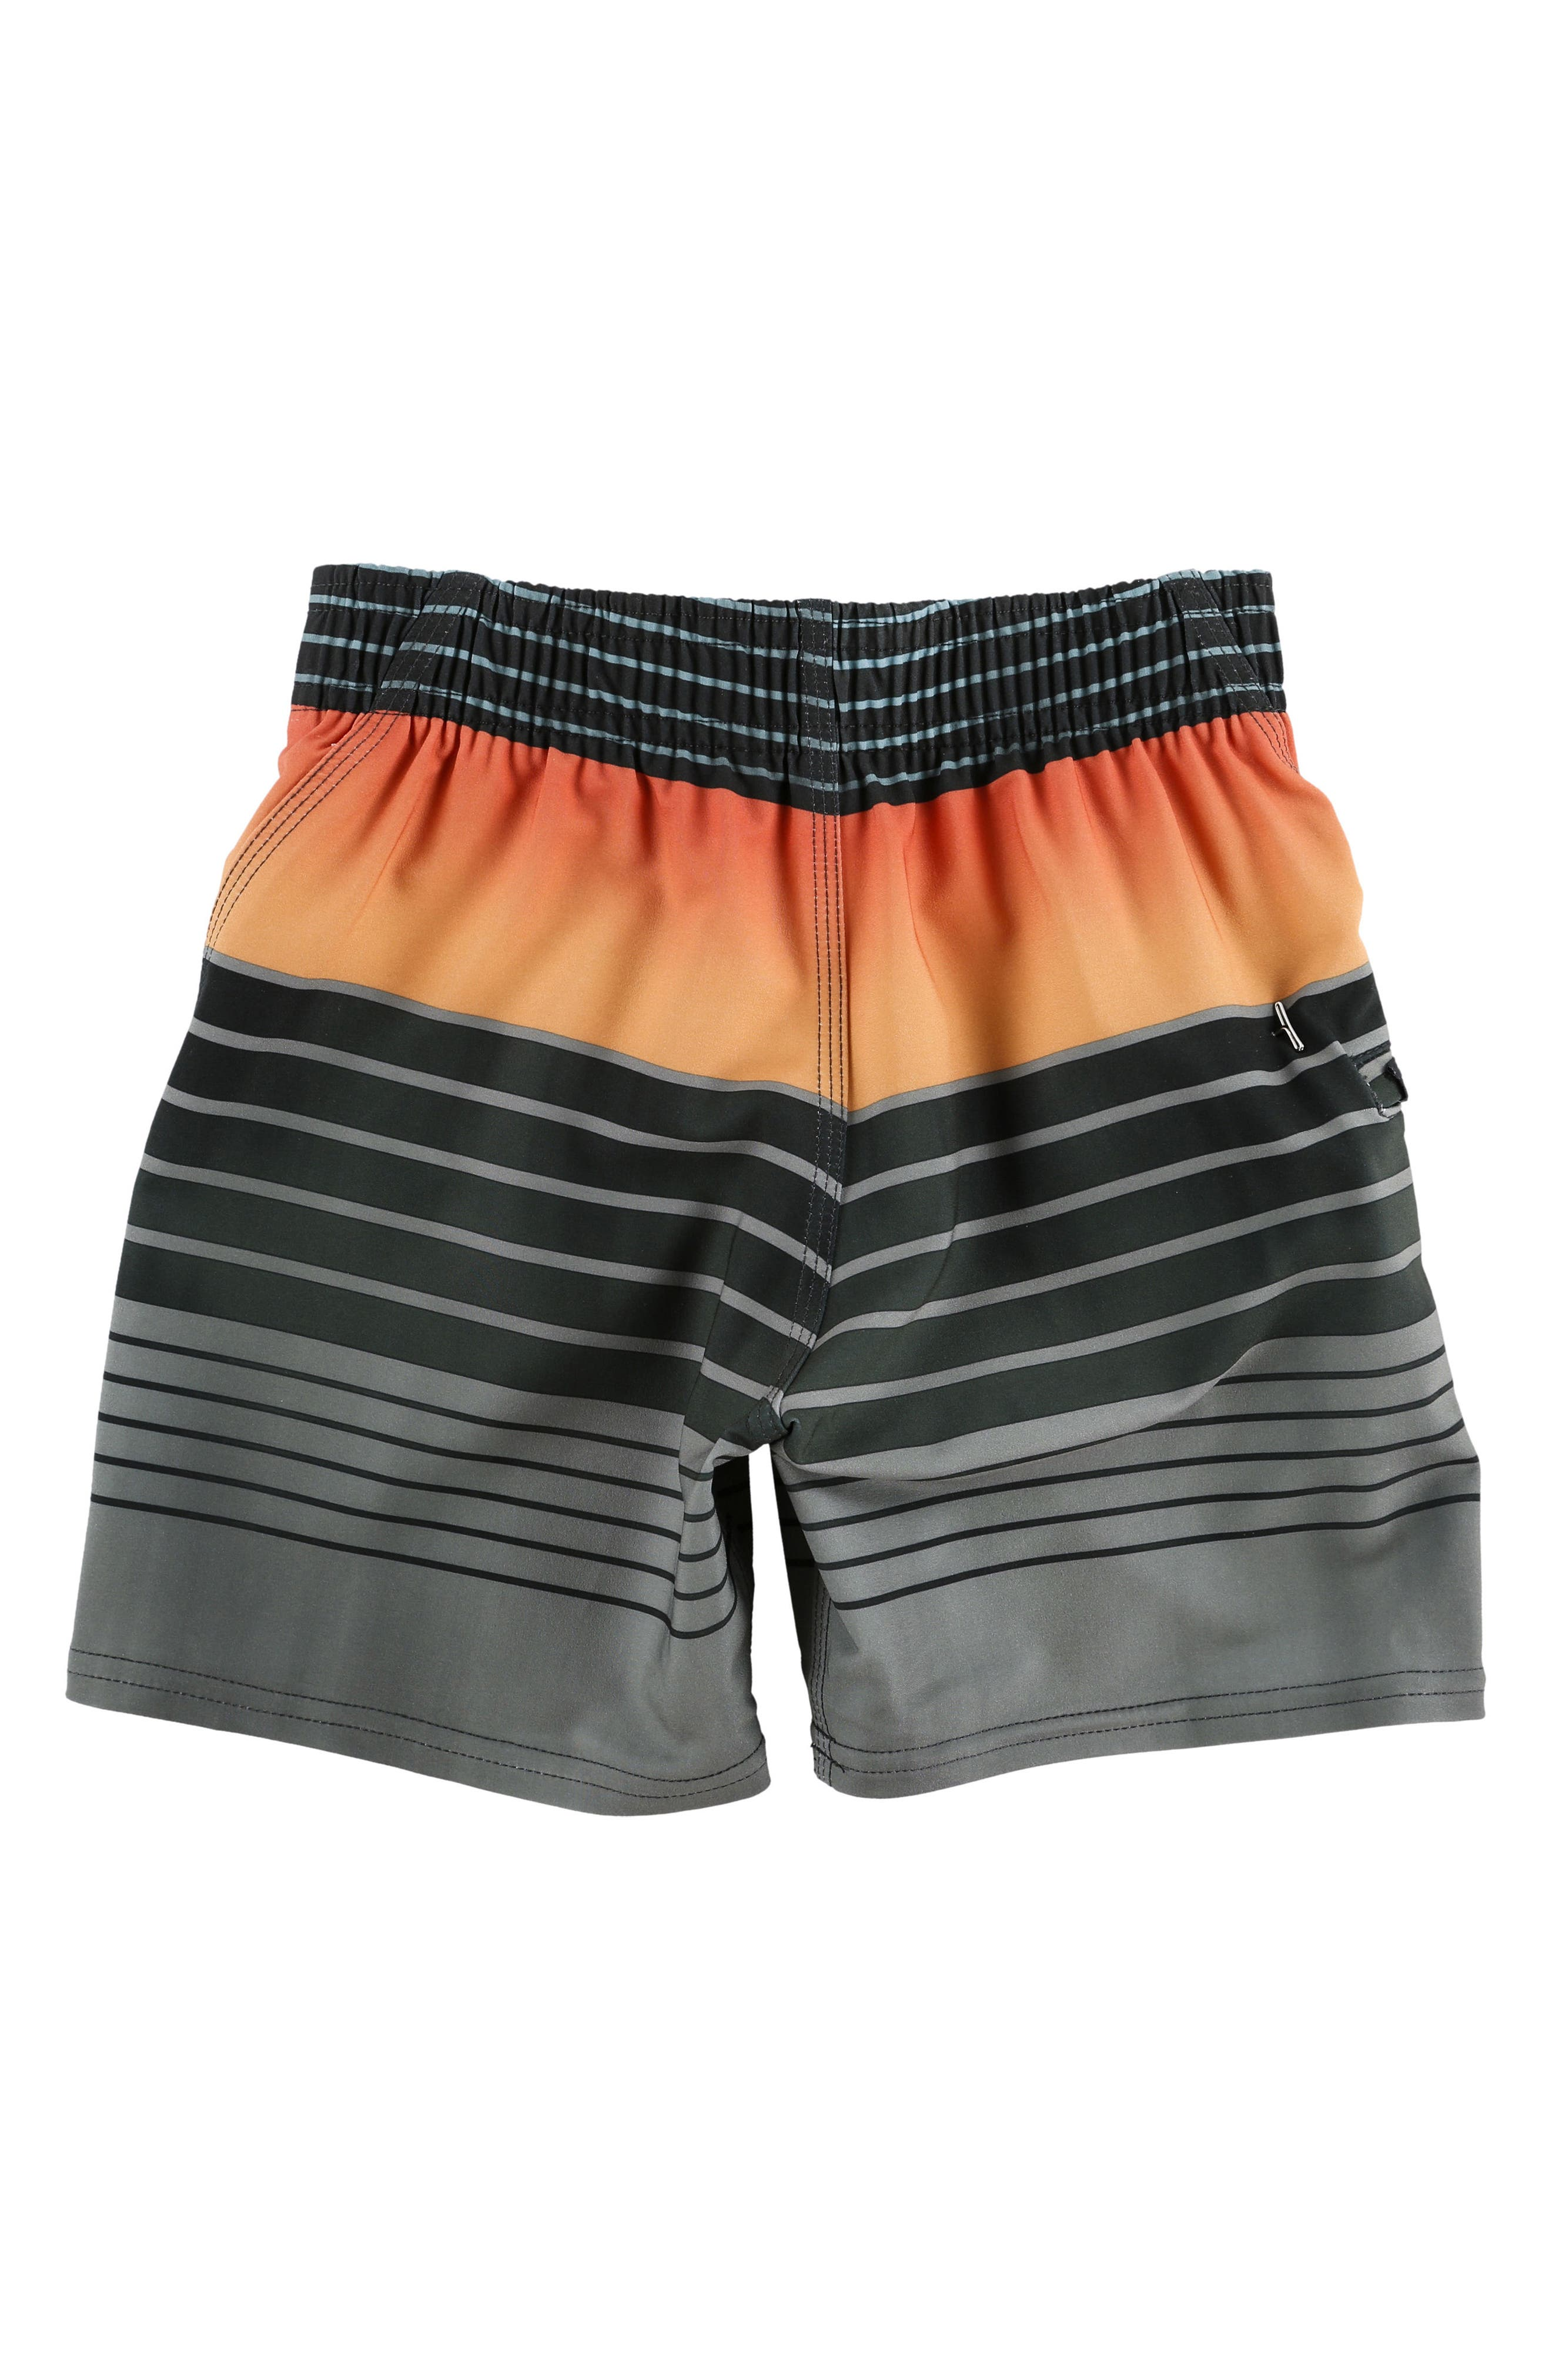 Hyperfreak Heist Board Shorts,                             Alternate thumbnail 11, color,